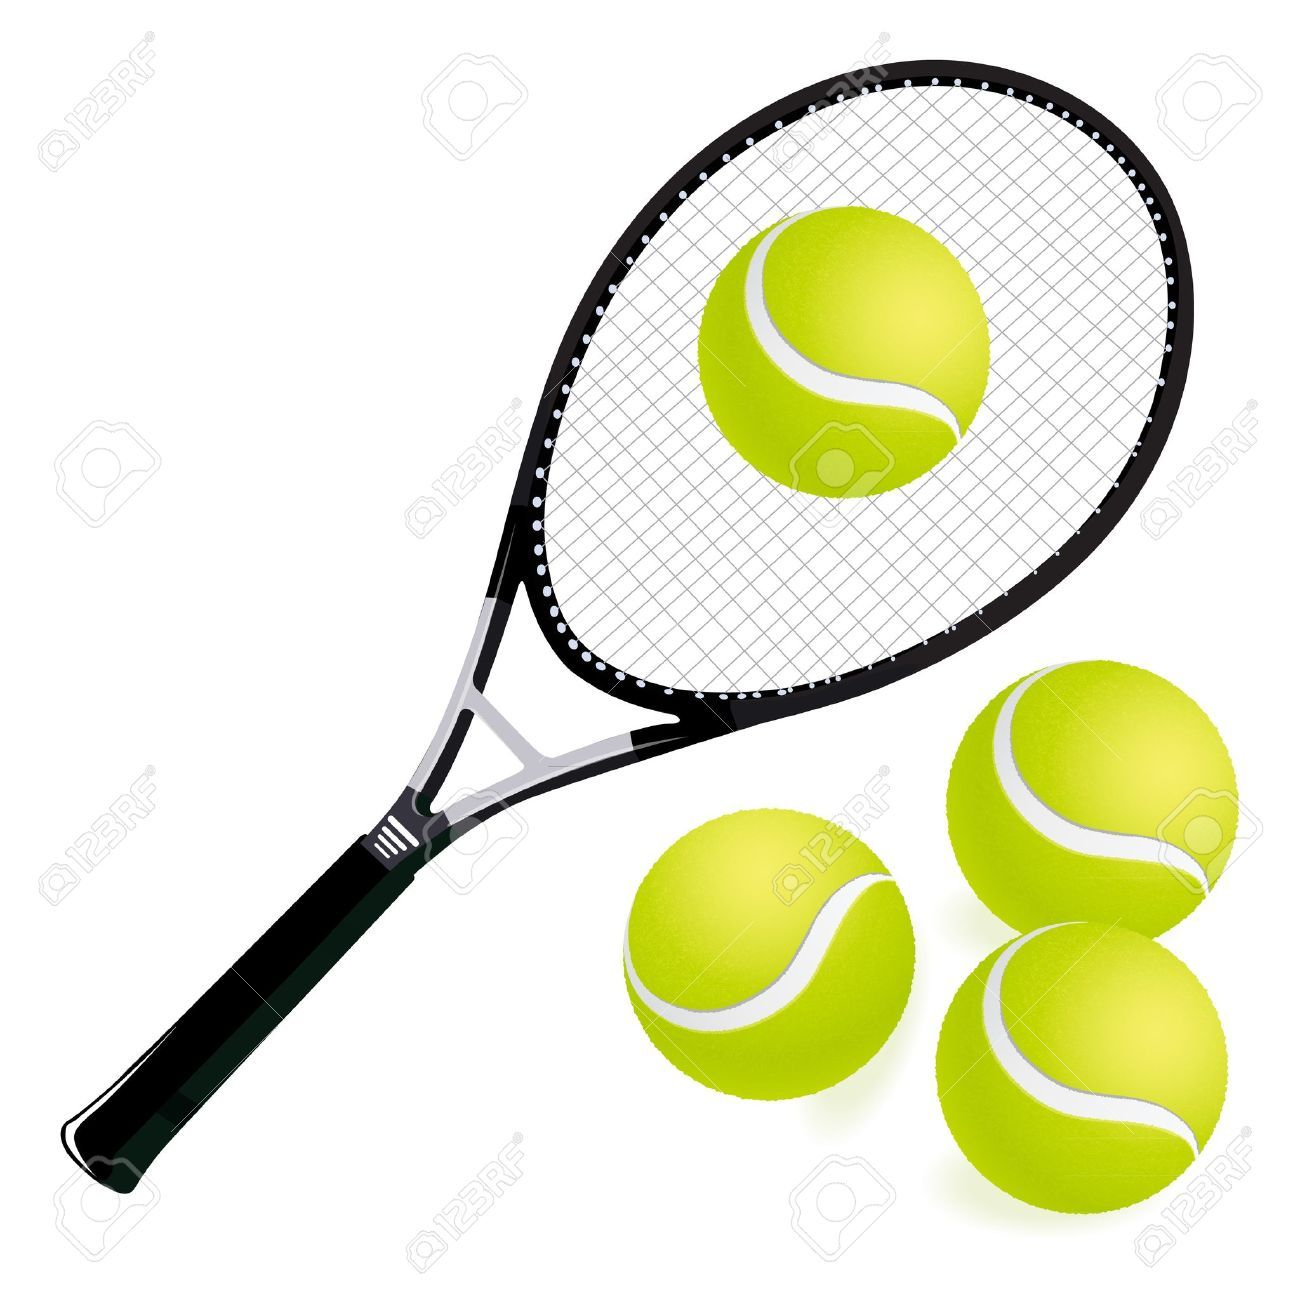 small resolution of tennis racket stock illustrations cliparts and royalty free 21 559 tennis racket stock